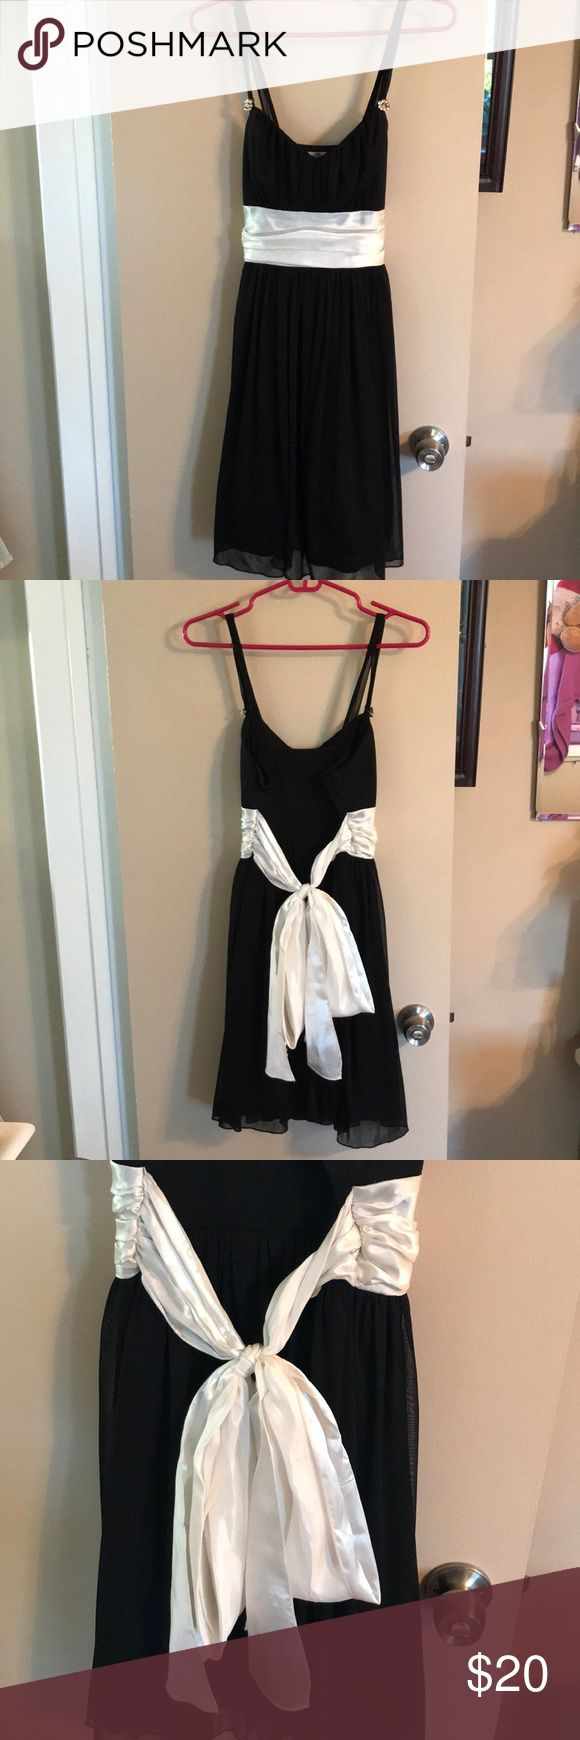 "Trixxi Formal Dress from Macy's Junior Section It is an adorable homecoming-type dress. It is black with a white sash that ties around in the back. It has a sort of heart shaped neck line with jewel detailing on the straps. Very flattering on all body types because it sinches in at the waist and is short, but long enough for tall girls. I am 5'8"" and it went up to my knees in length. Very comfortable and breathable. Perfect for a prom, homecoming, dance, or any cocktail party type setting…"